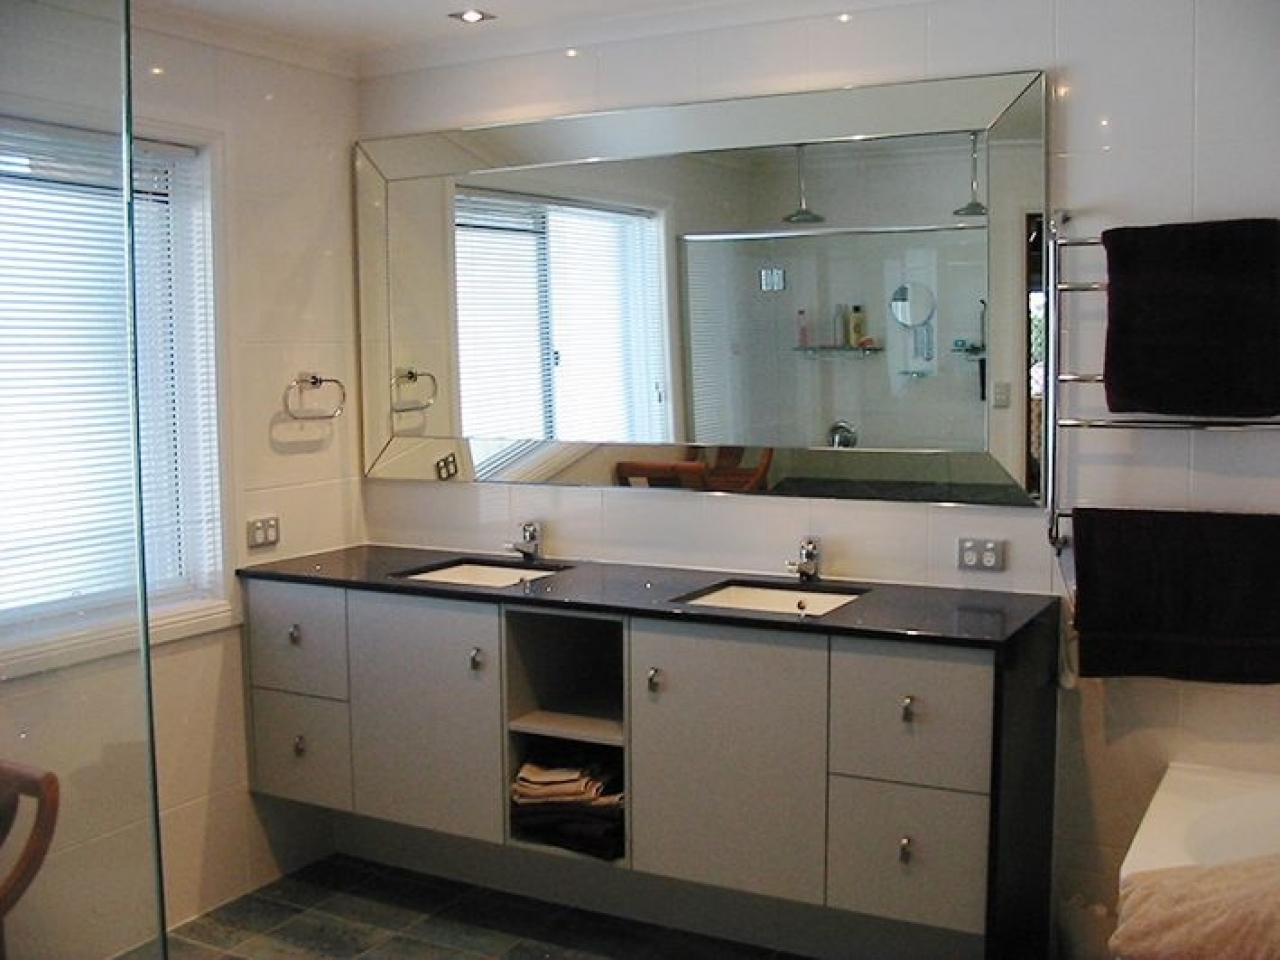 Epic Frameless Mirror Bathroom Vanity Bathroom Mirrors Design Bathroom inside Beautiful Bathroom Vanity Mirrors